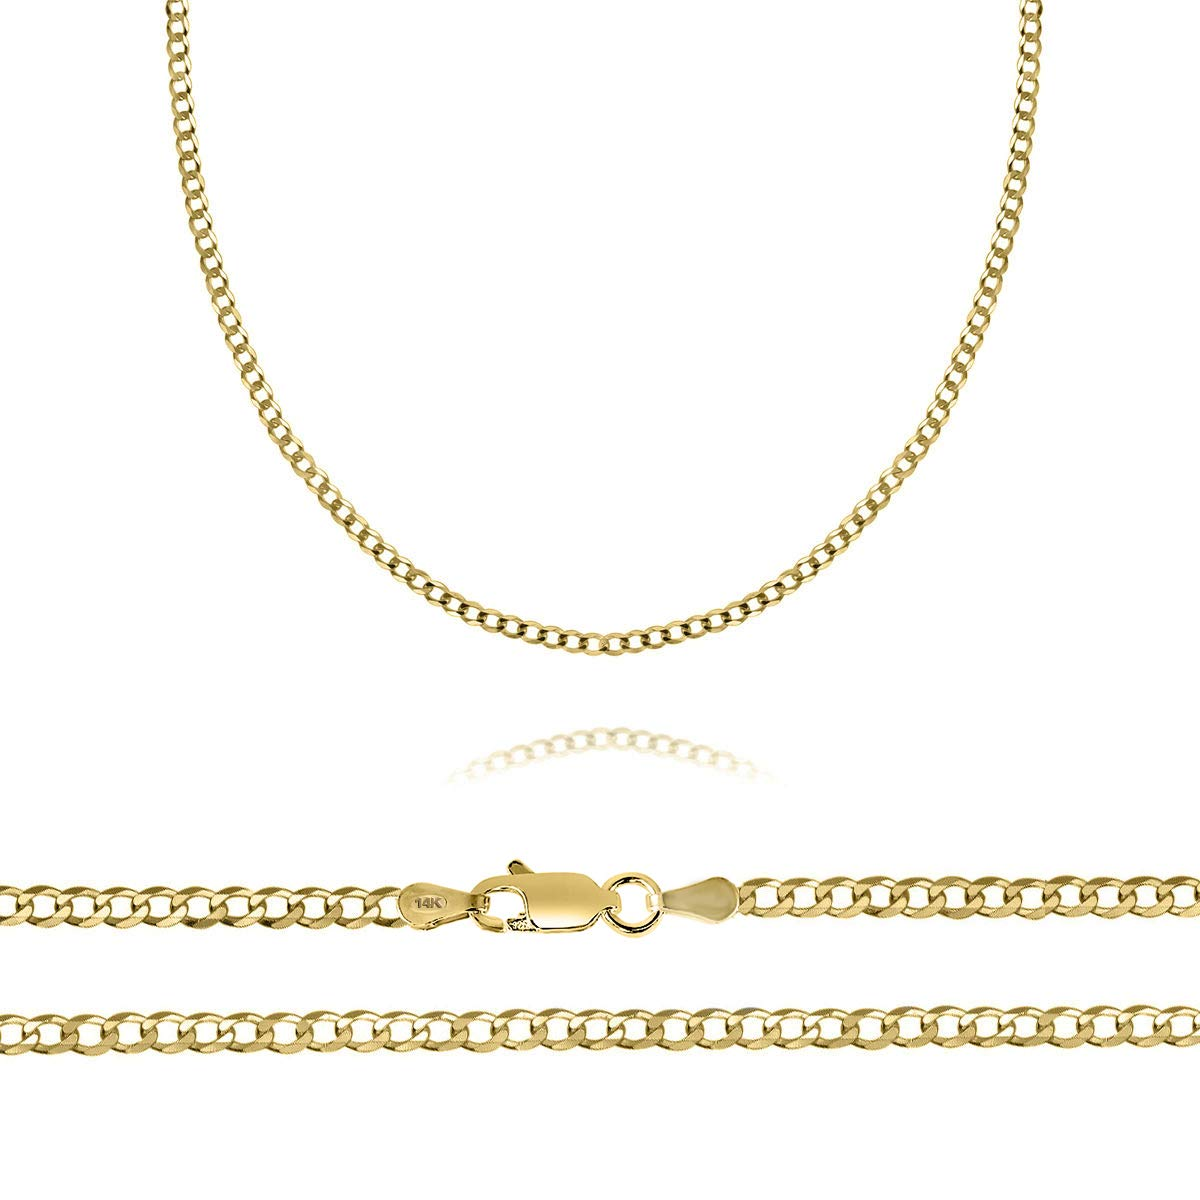 14K Solid Gold 2.5MM Curb Chain Necklace with Lobster Clasp, 16'' - 30'' (20)